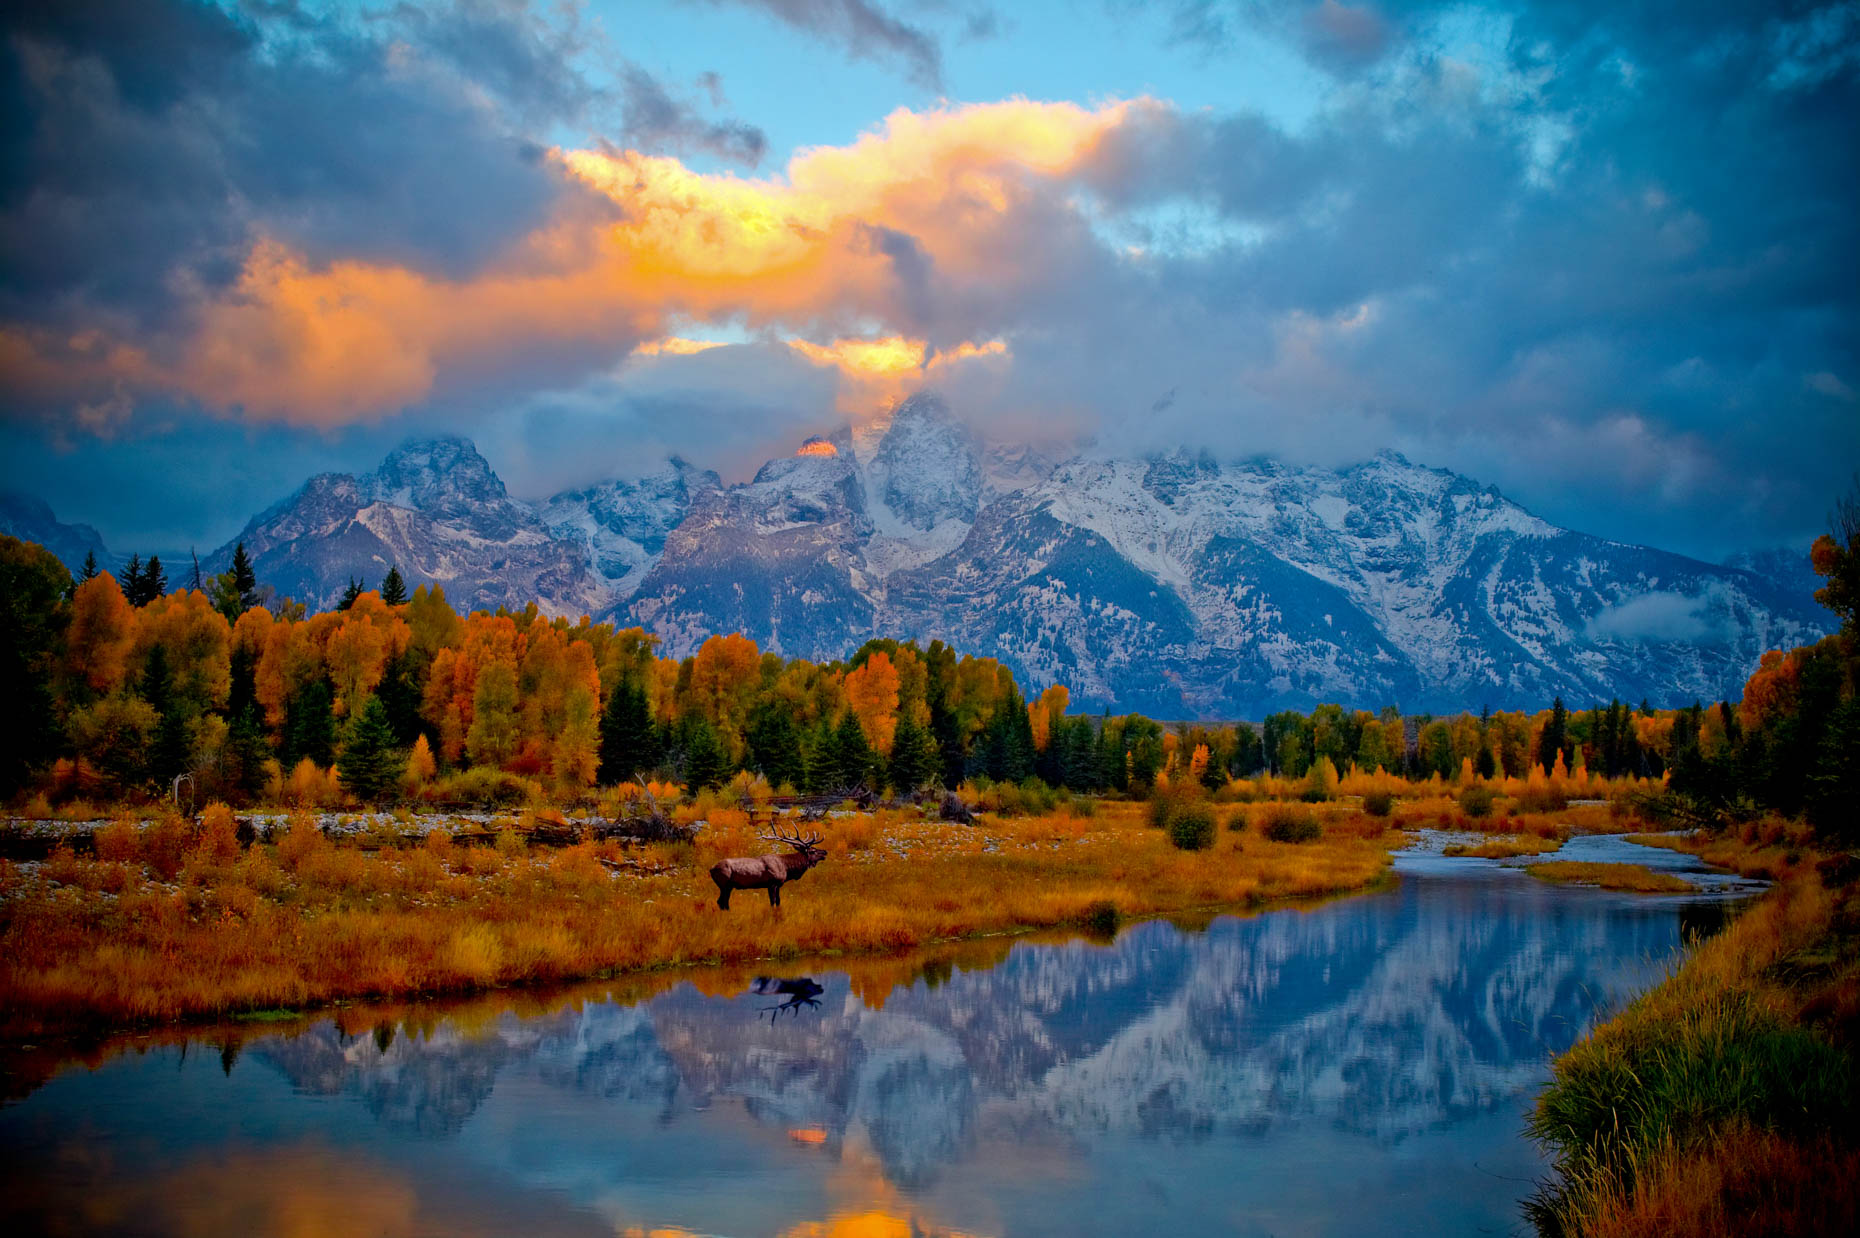 Teton_Steve-000005-5-Edit_copy-1